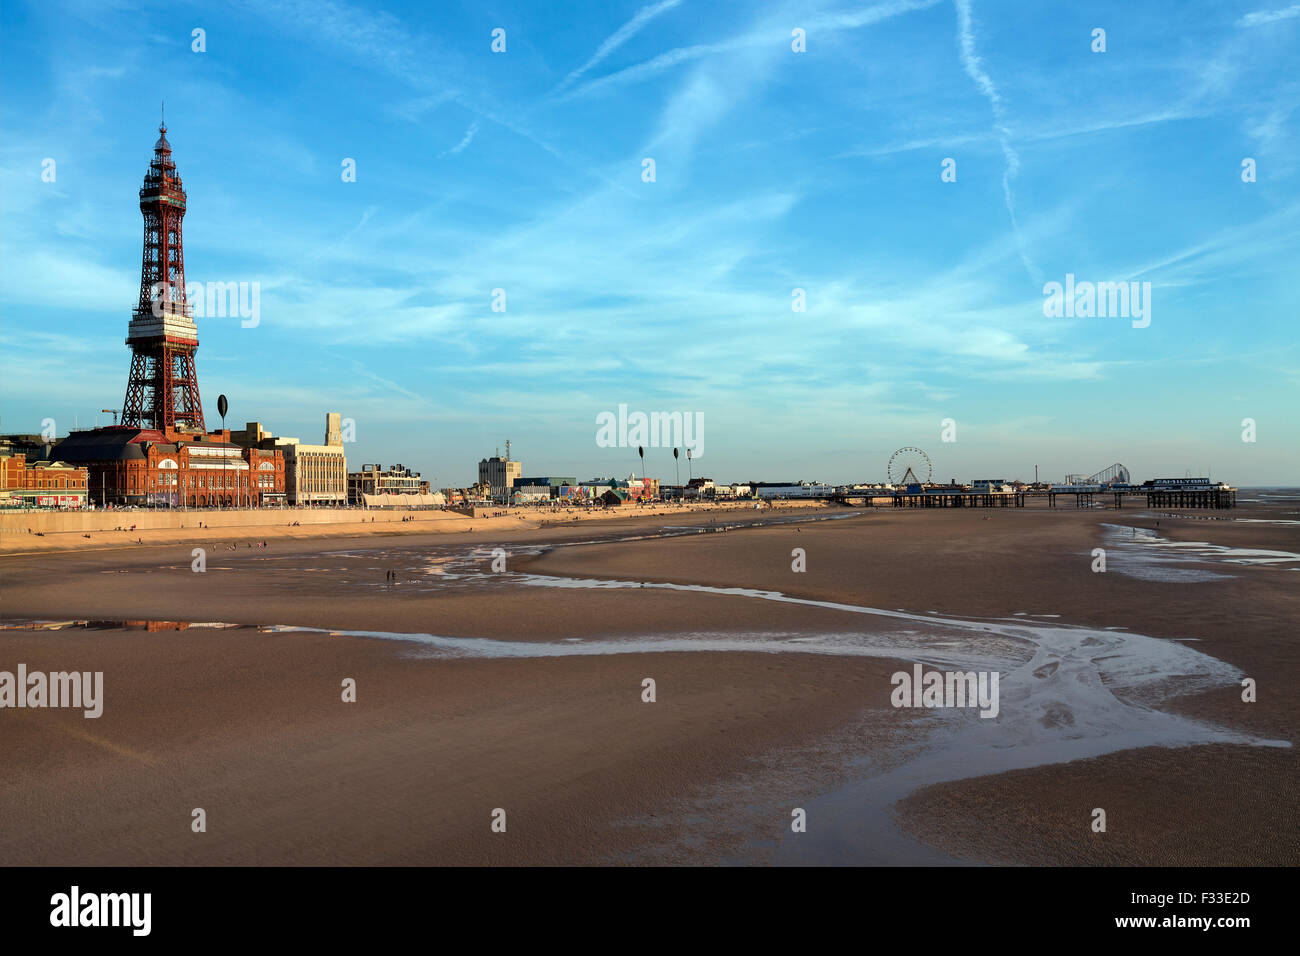 Blackpool Tower - The beach at low tide at Blackpool on the northwest coast of England. - Stock Image